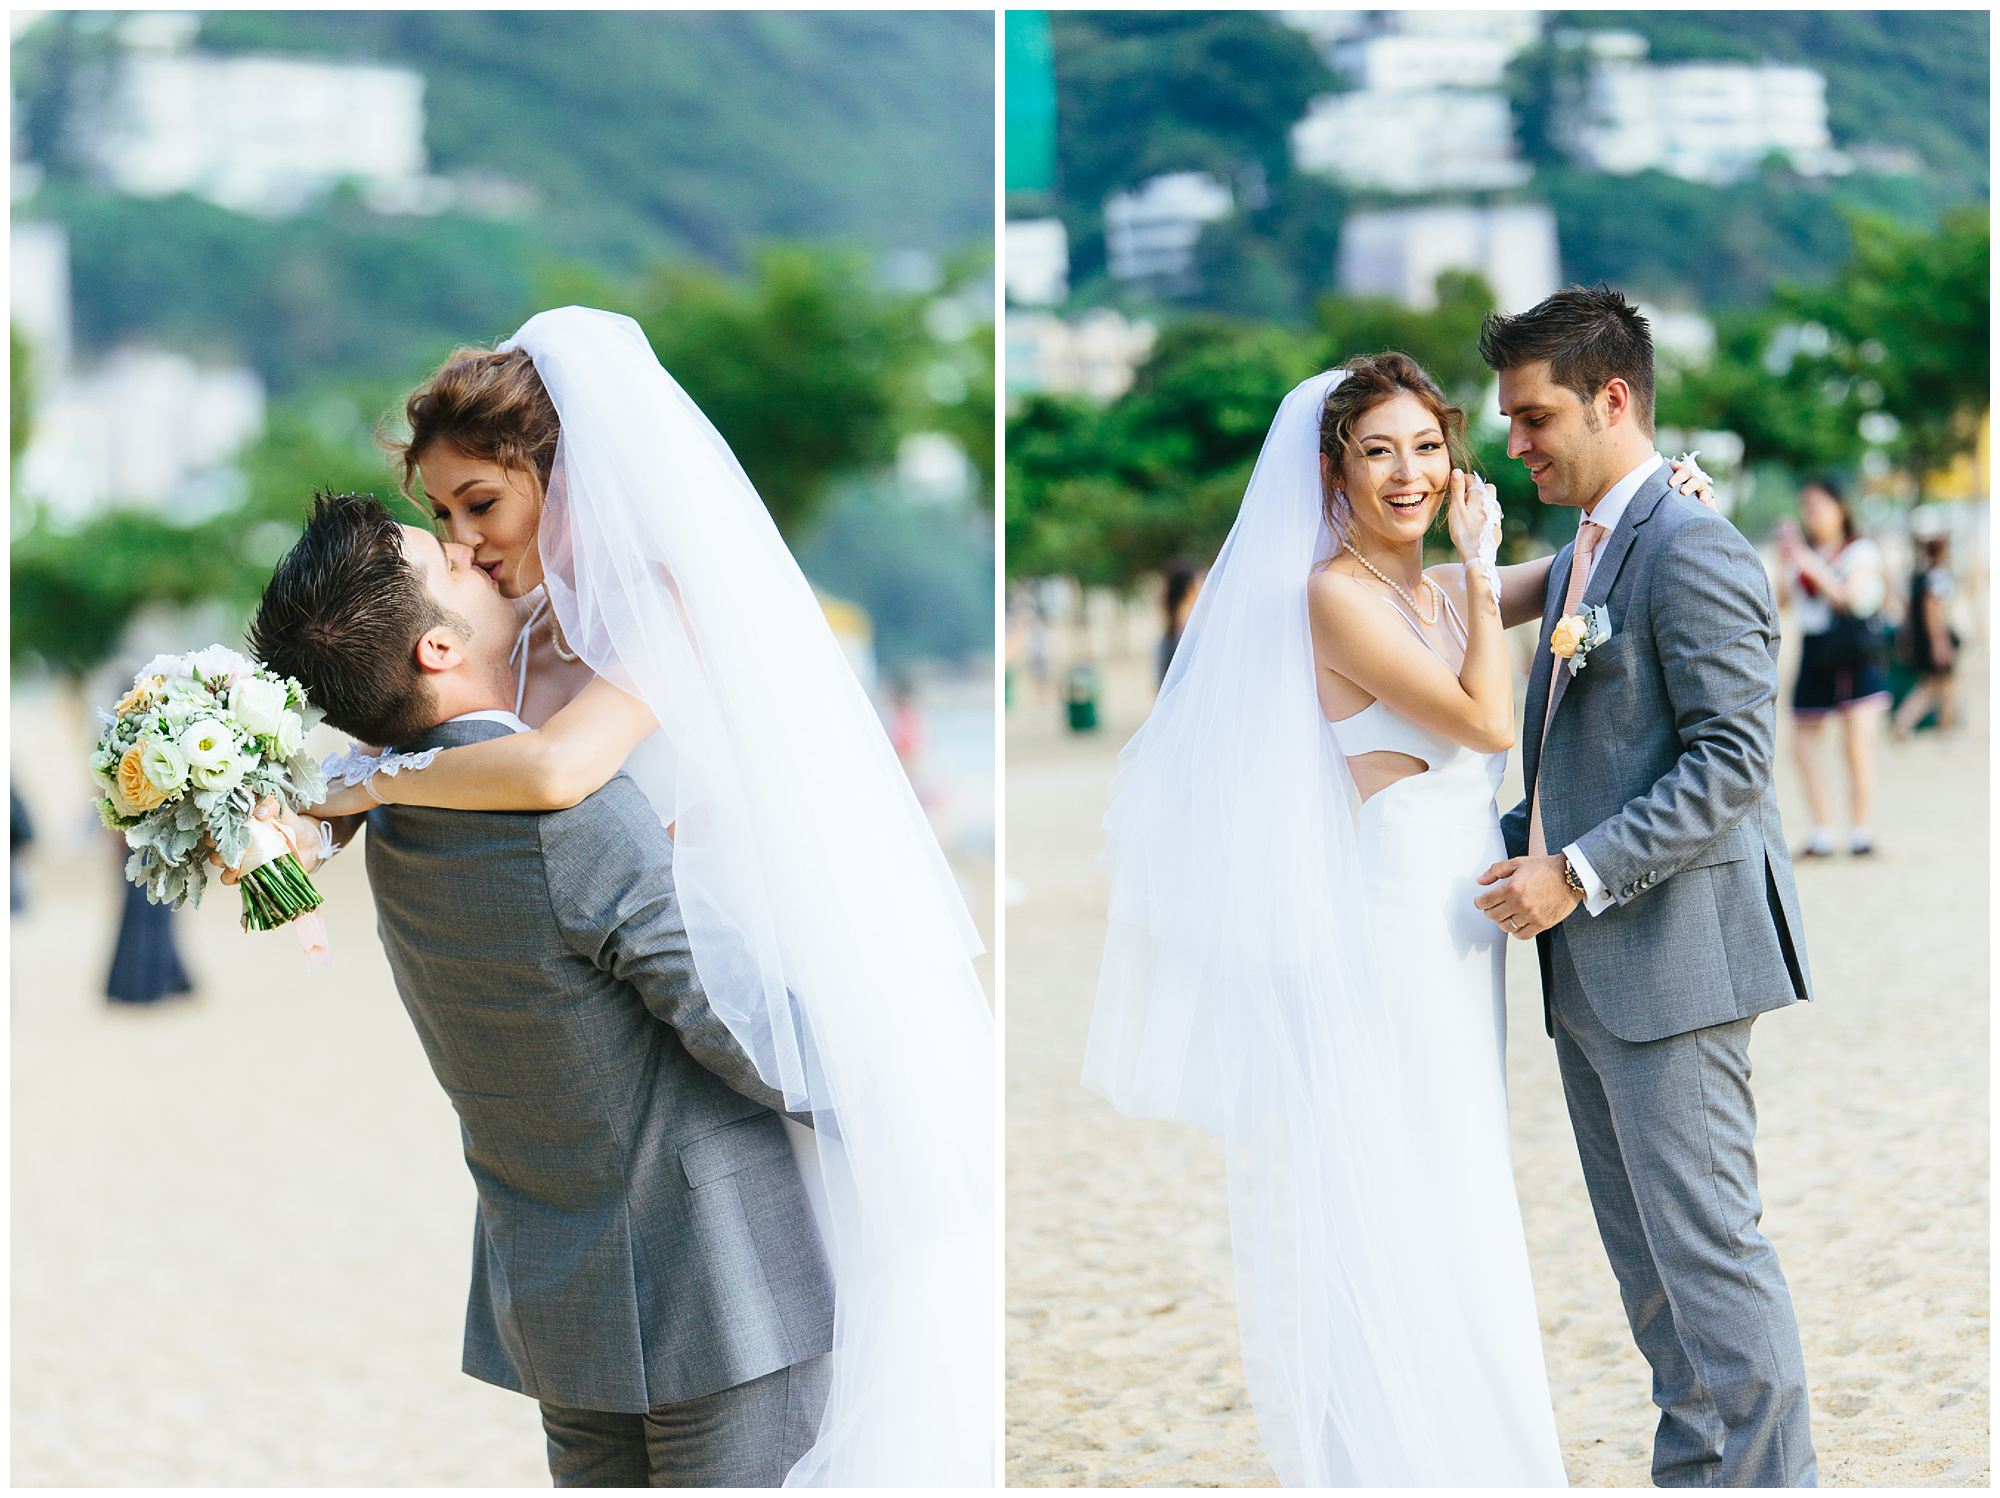 sa-wedding-hong-kong-168